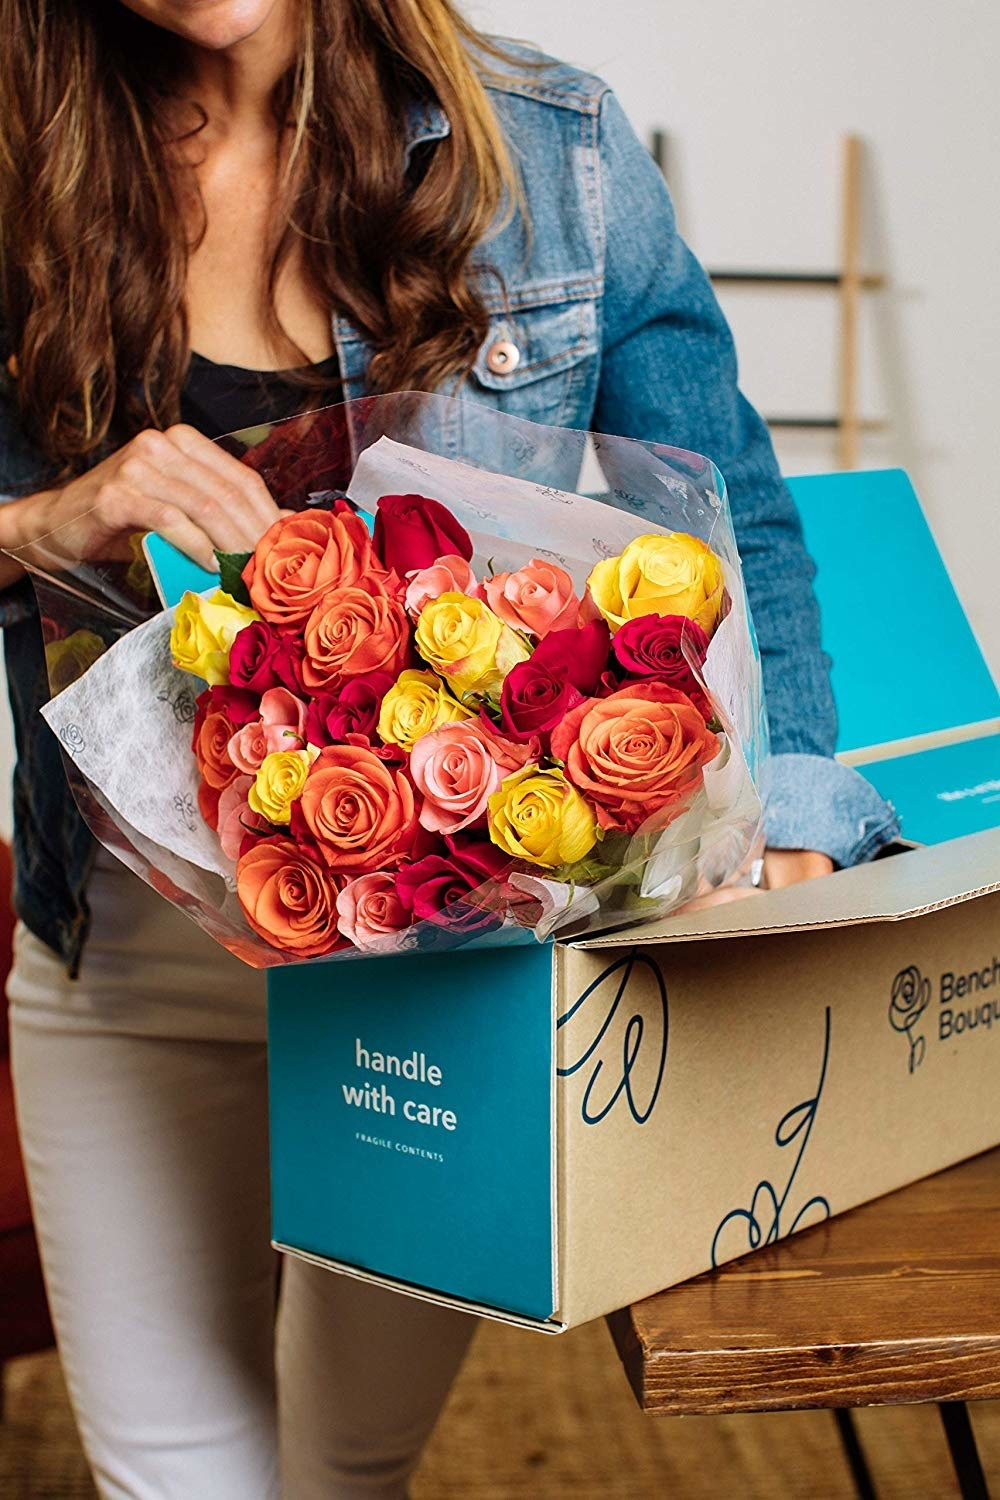 A person holding a box of Benchmark Bouquets